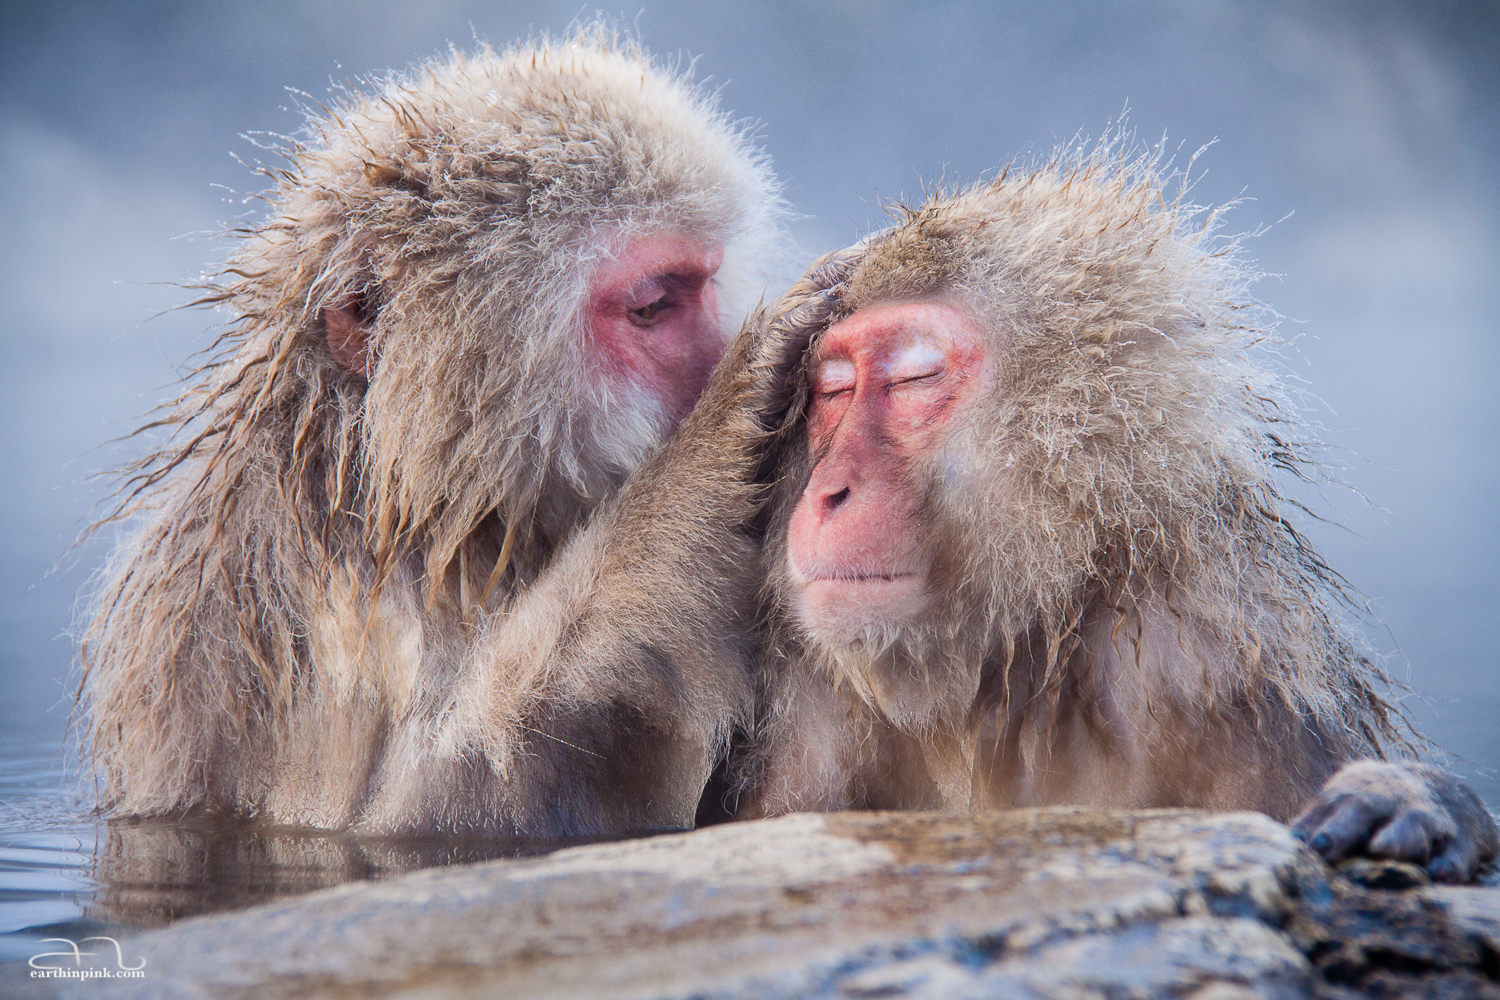 At the Jigokudani Monkey Park, even the monkeys have learned the ways of the Japanese hot bath (onsen).